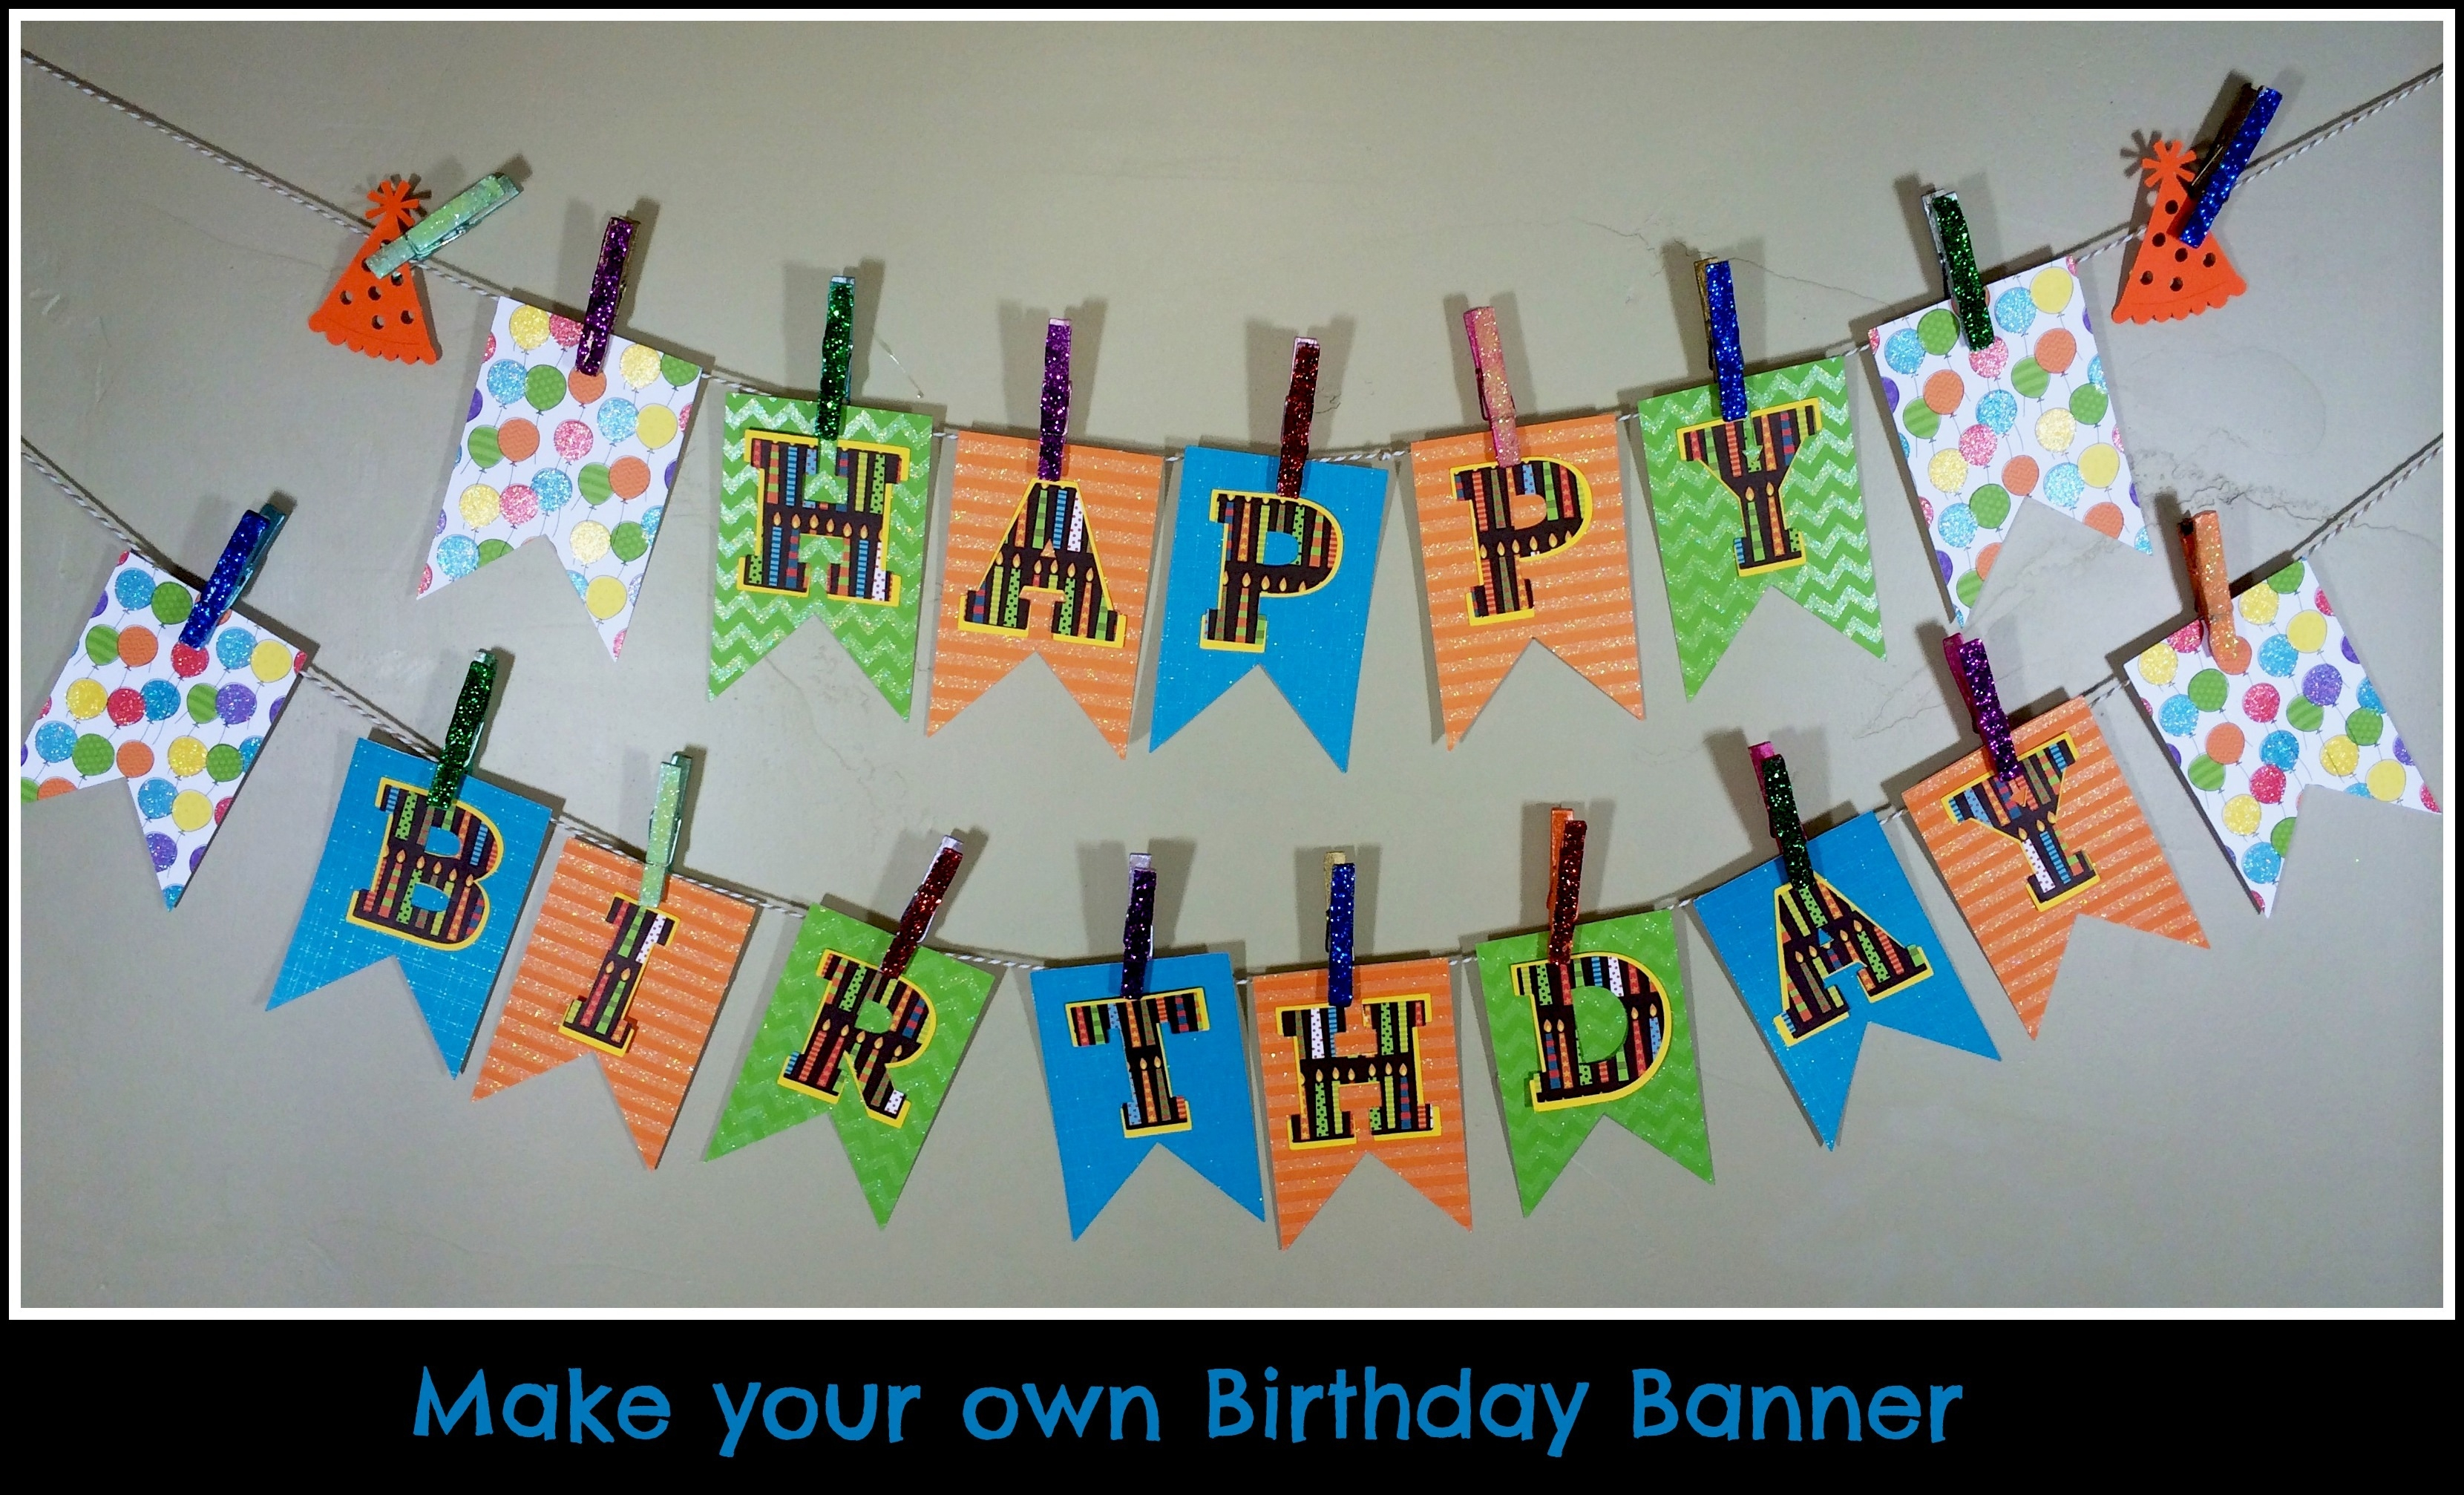 design your own birthday banner ; make-your-own-birthday-pennant-banner-a-sparkle-of-genius-with-make-your-own-banner